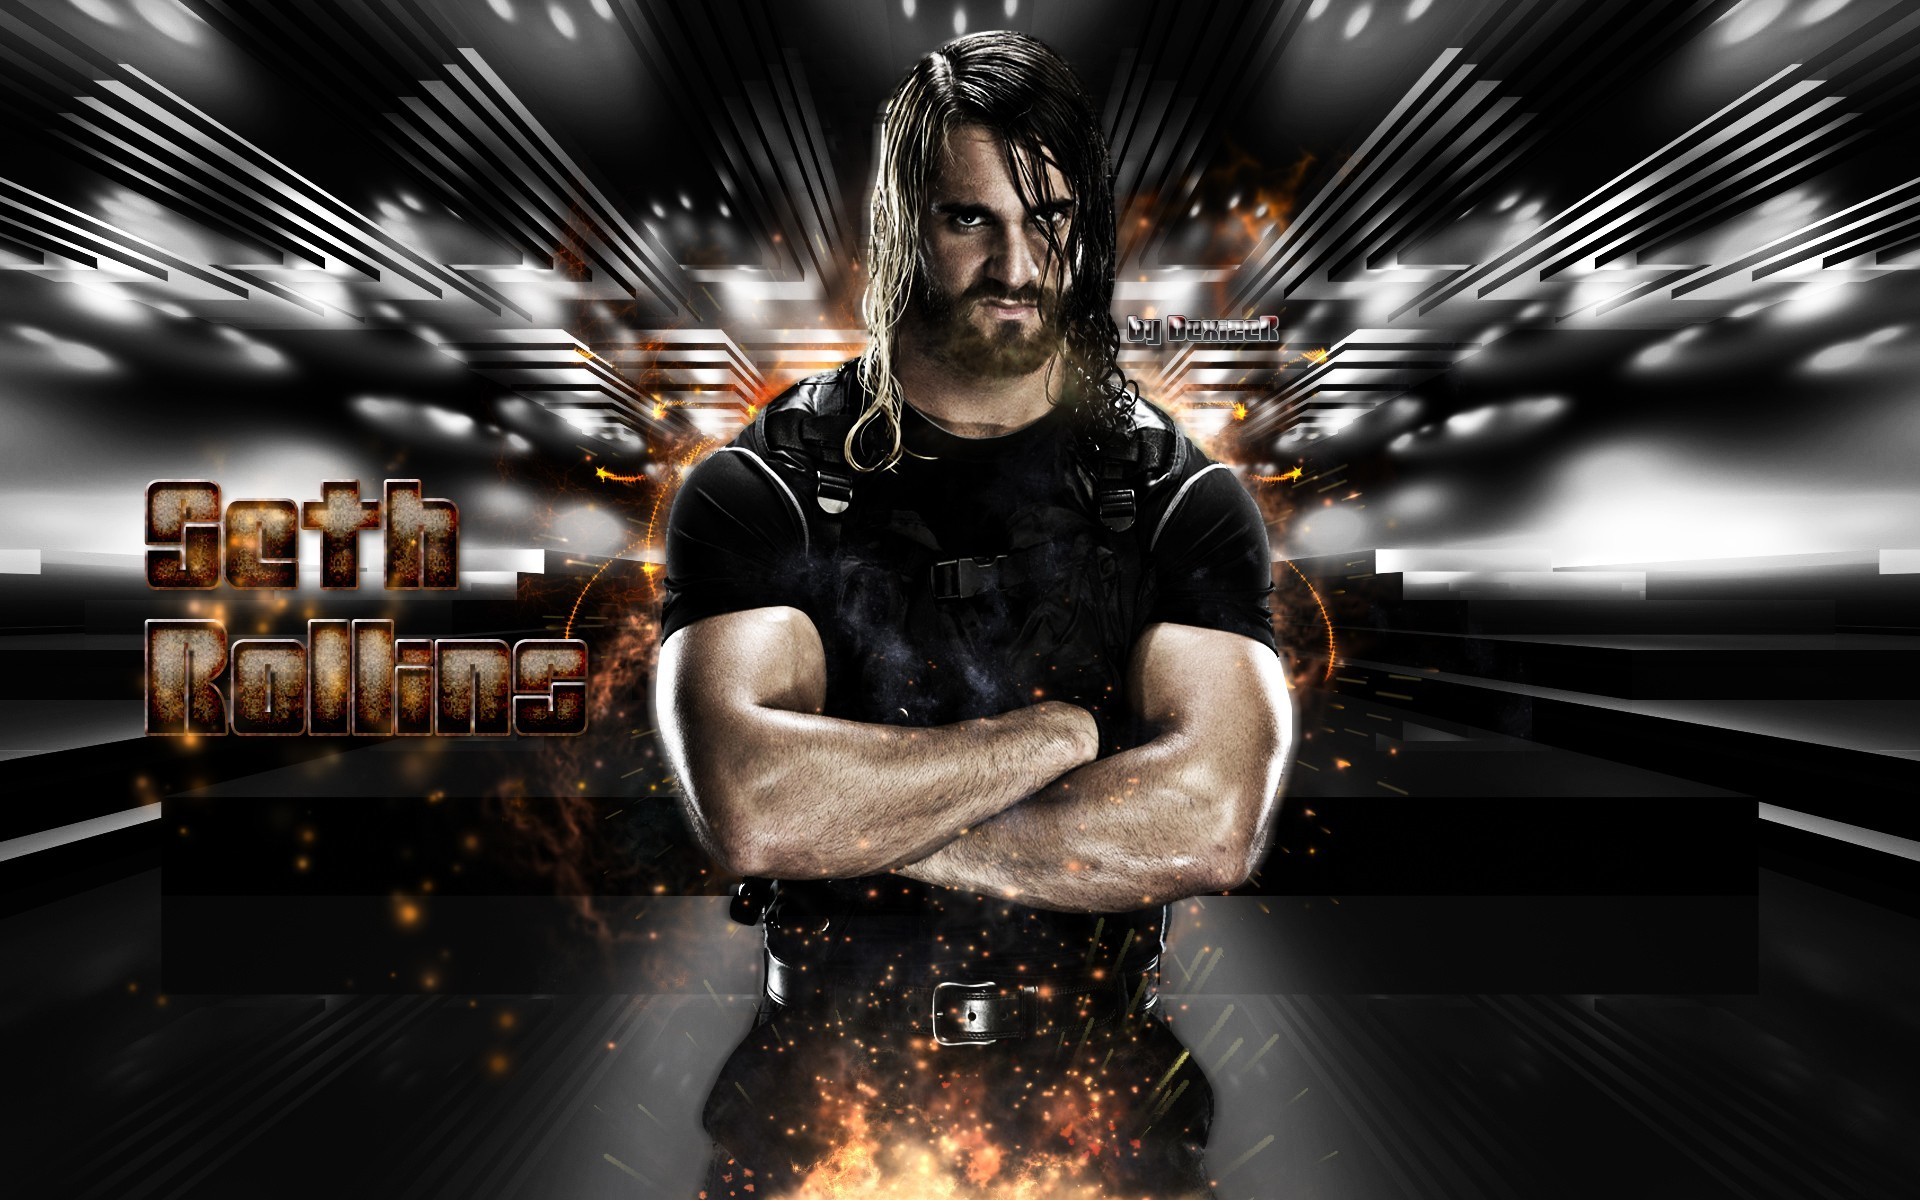 1920x1200 WWE Superstar Seth Rollins Wallpapers - New HD Wallpapers